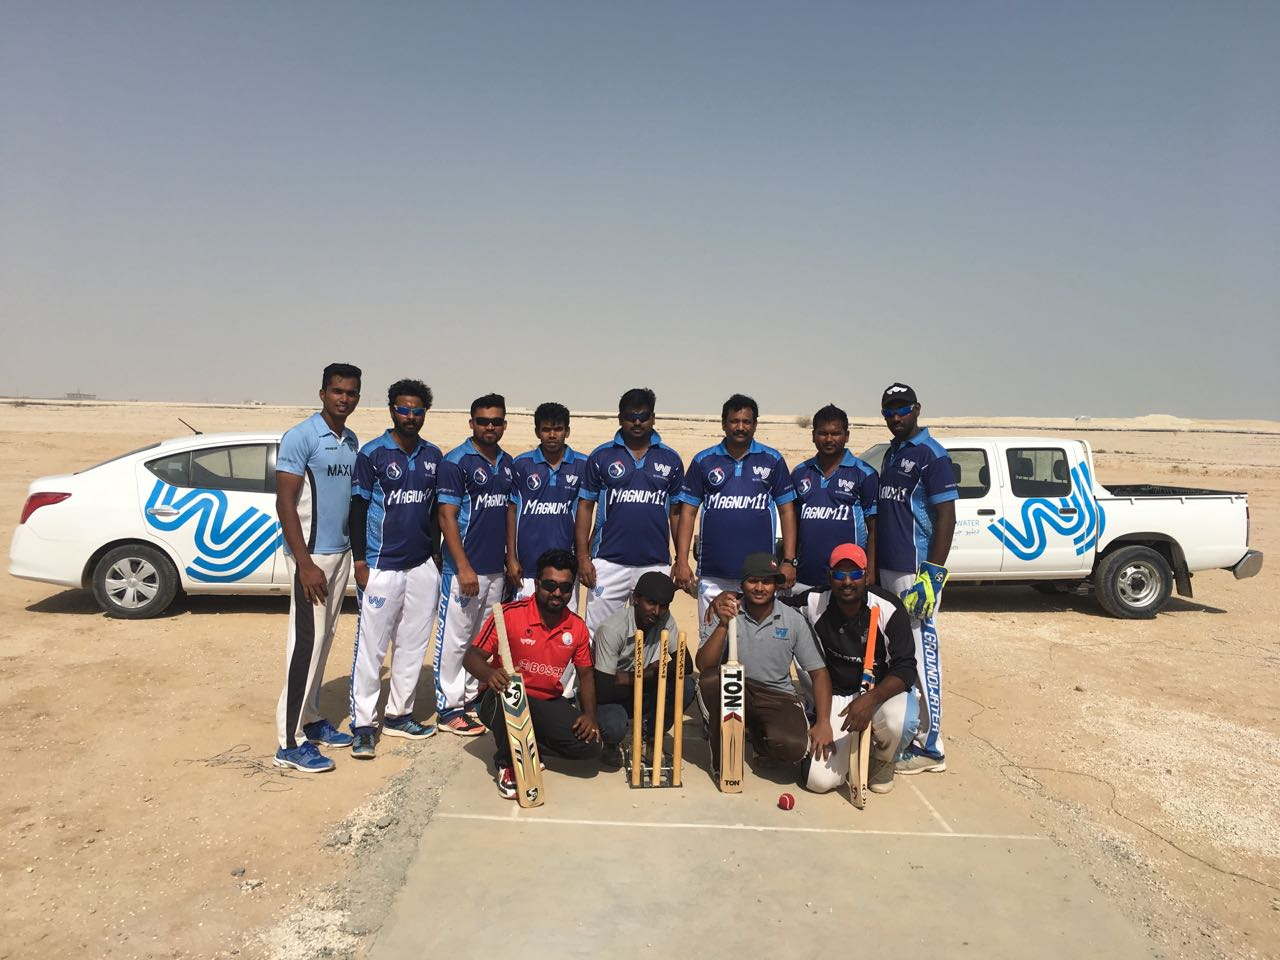 Team-Group-Photo-1.jpg